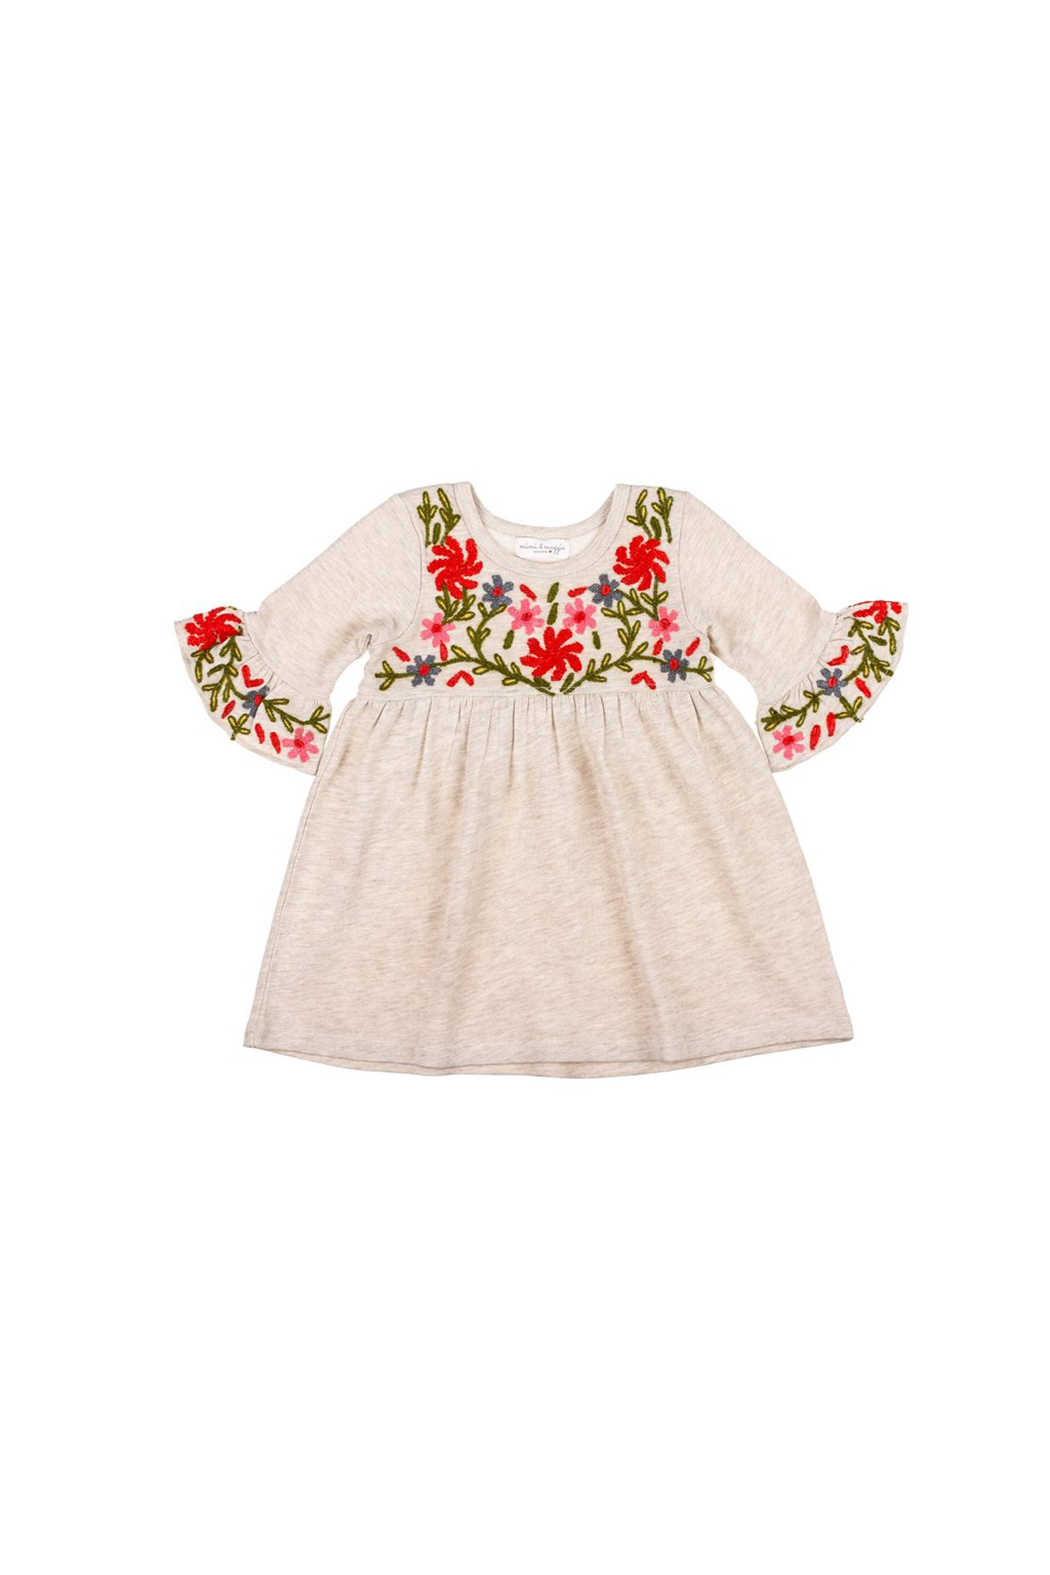 Mimi & Maggie Oatmeal Flowers Embellish Knit Dress - Main Image